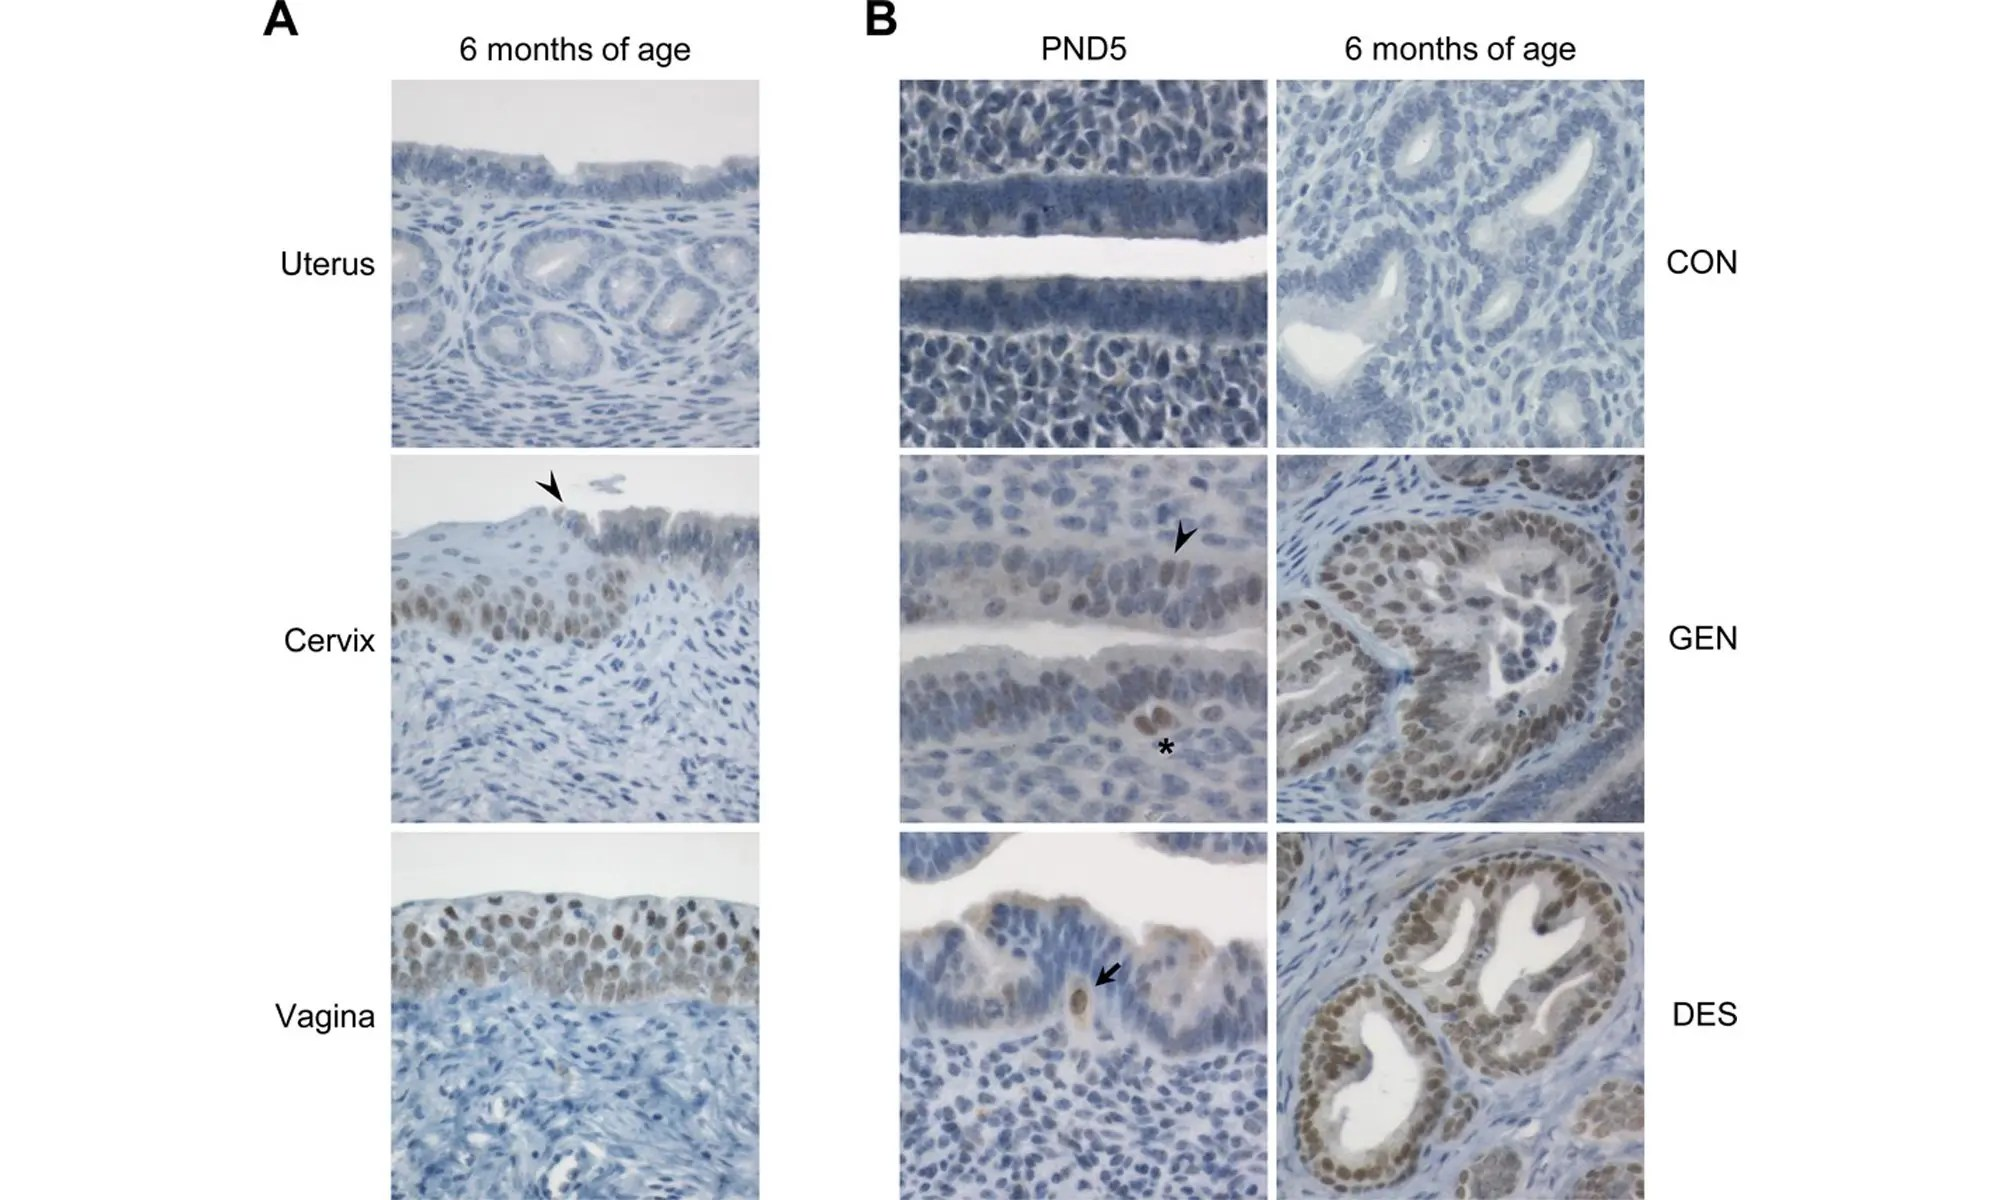 Developmental DES exposure induces persistent endometrial protein SIX1 expression